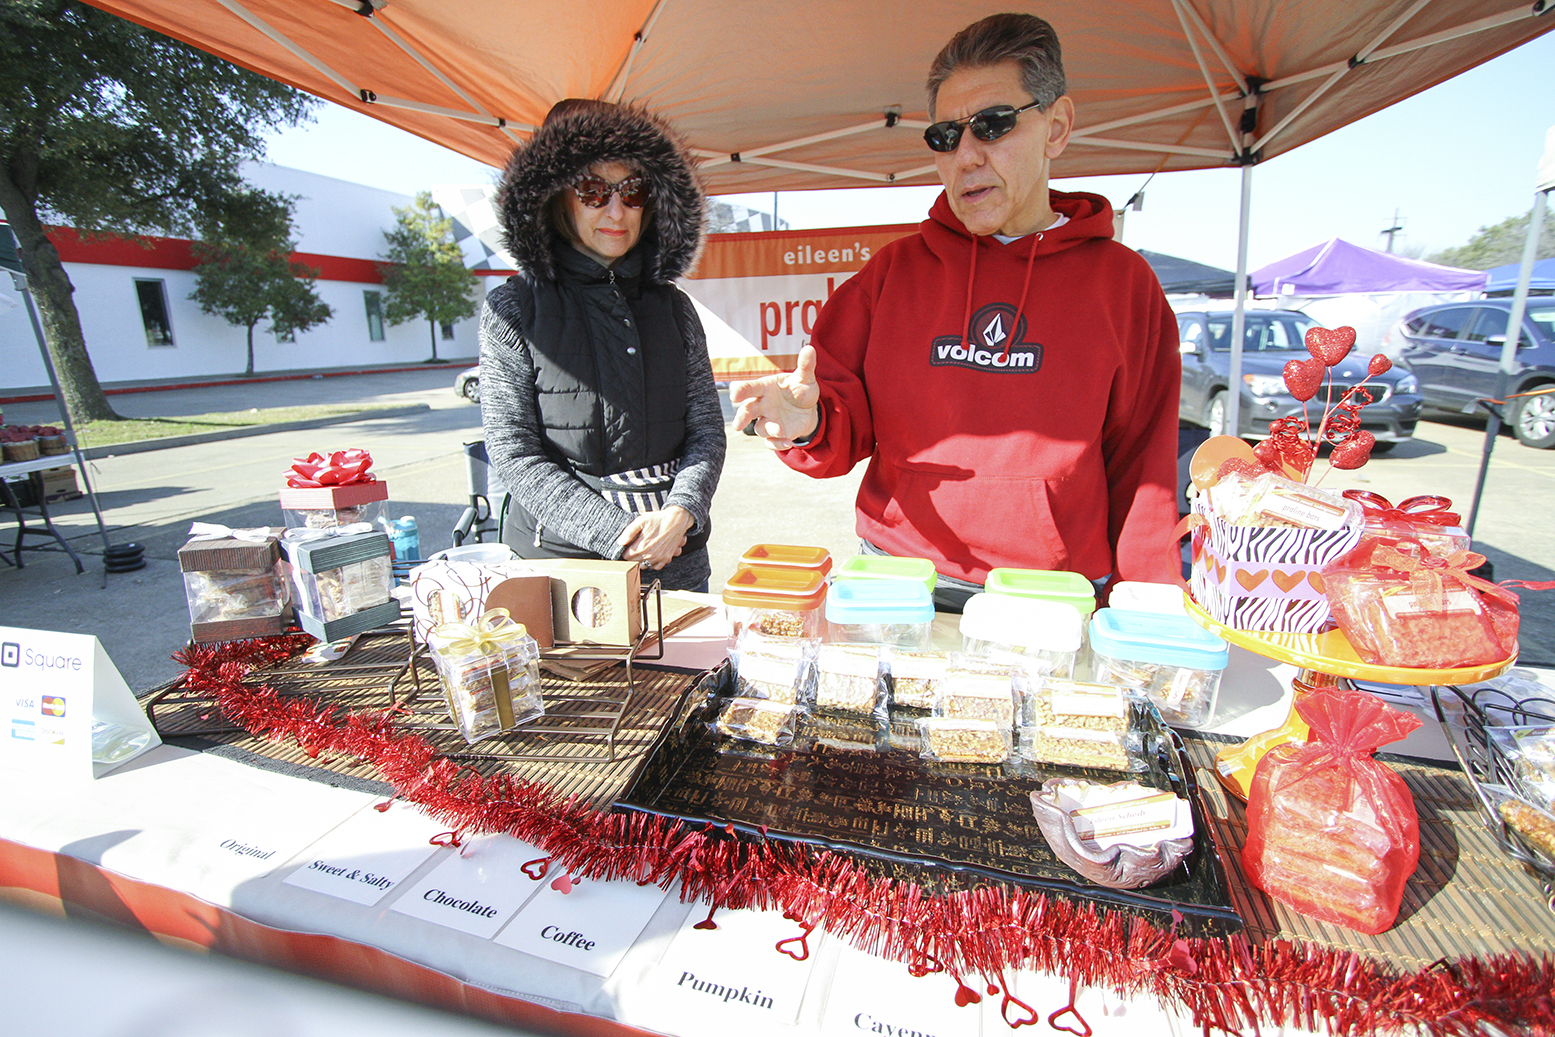 Eileen and Jack Scheib run Eileen's Pralines together after their son suggested starting a business selling her homemade praline bars.